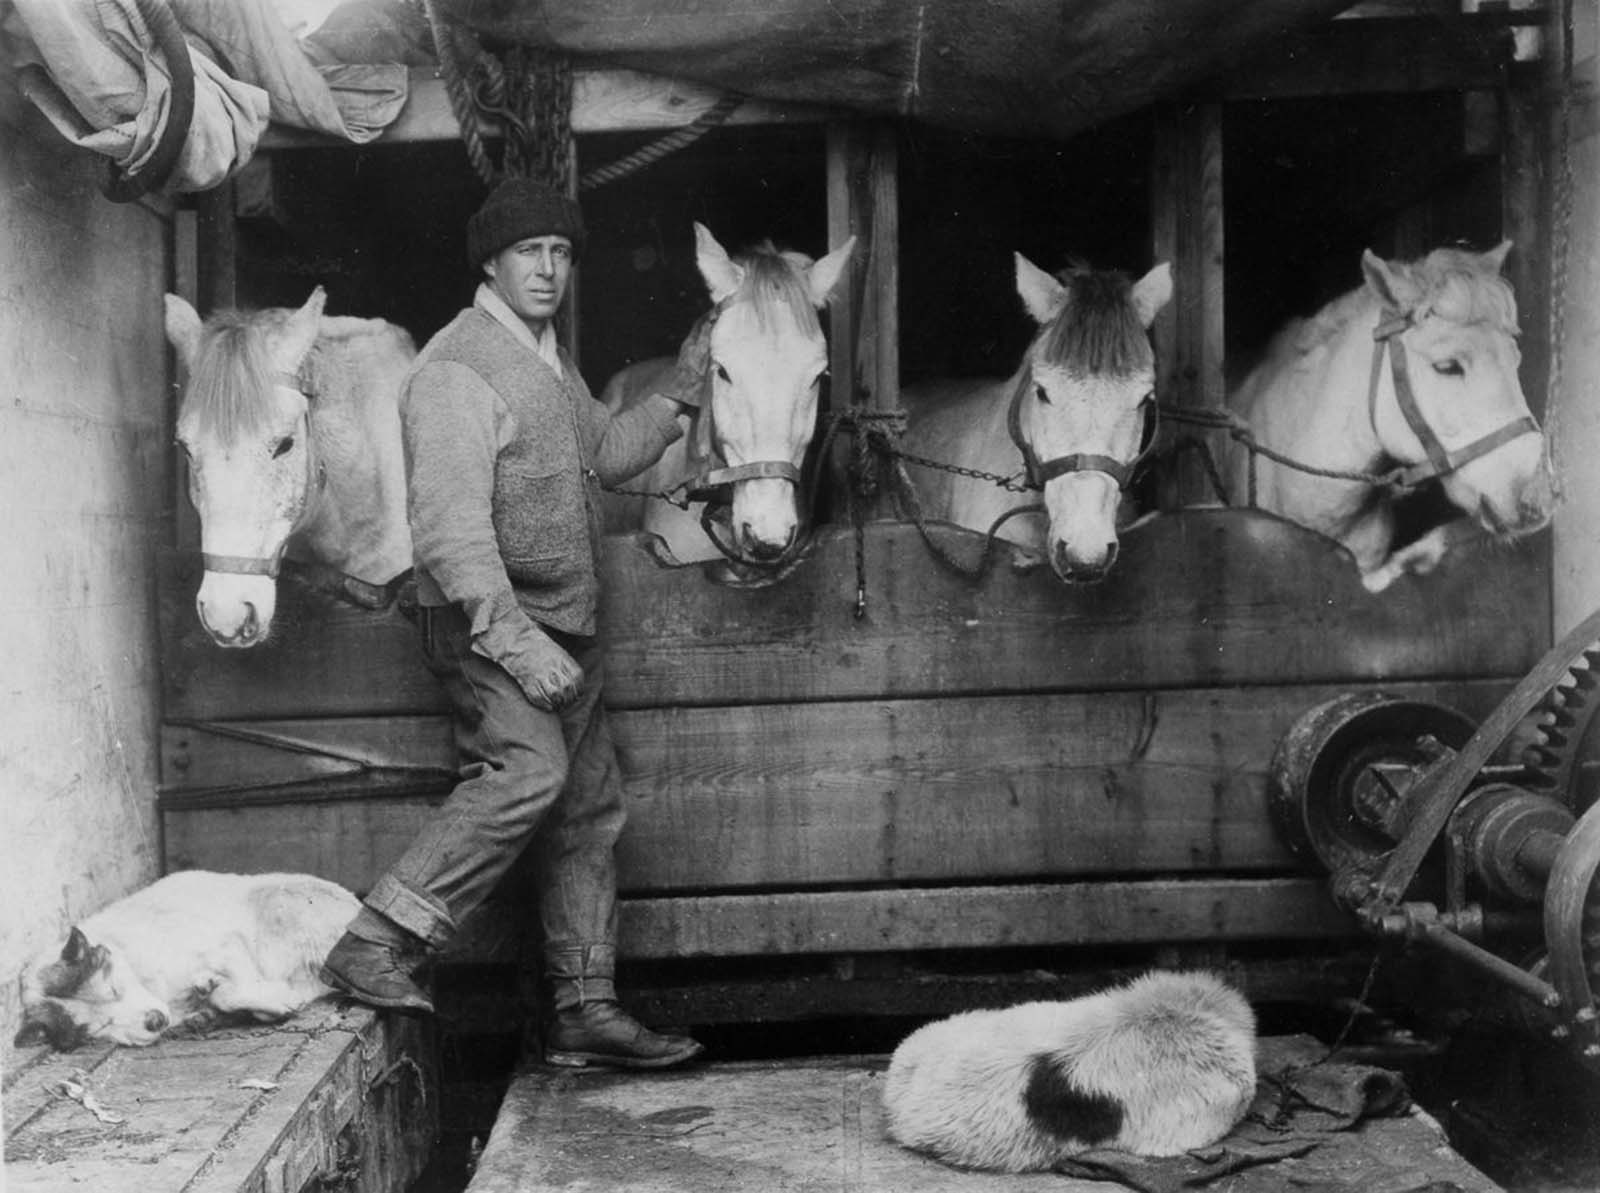 Capt. Lawrence Oates tends to the ponies in their stables aboard the Terra Nova. December, 1910.